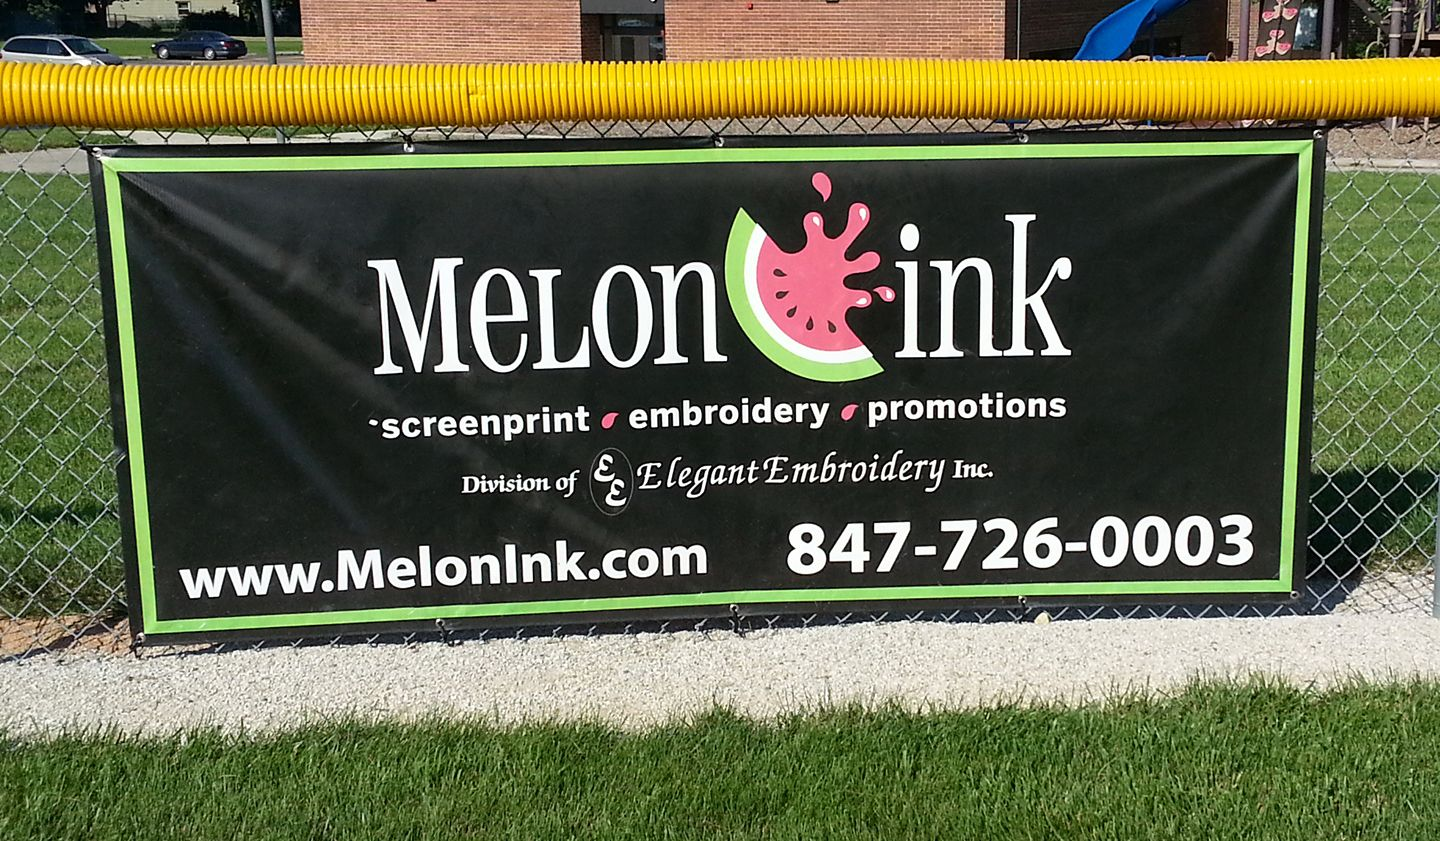 Parade Banners On Special 8ft X 3ft Vinyl Banner Regularly 102 Now Only 79 Full Color Imprint With F Screen Printing Vinyl Banners Farmers Market Signage